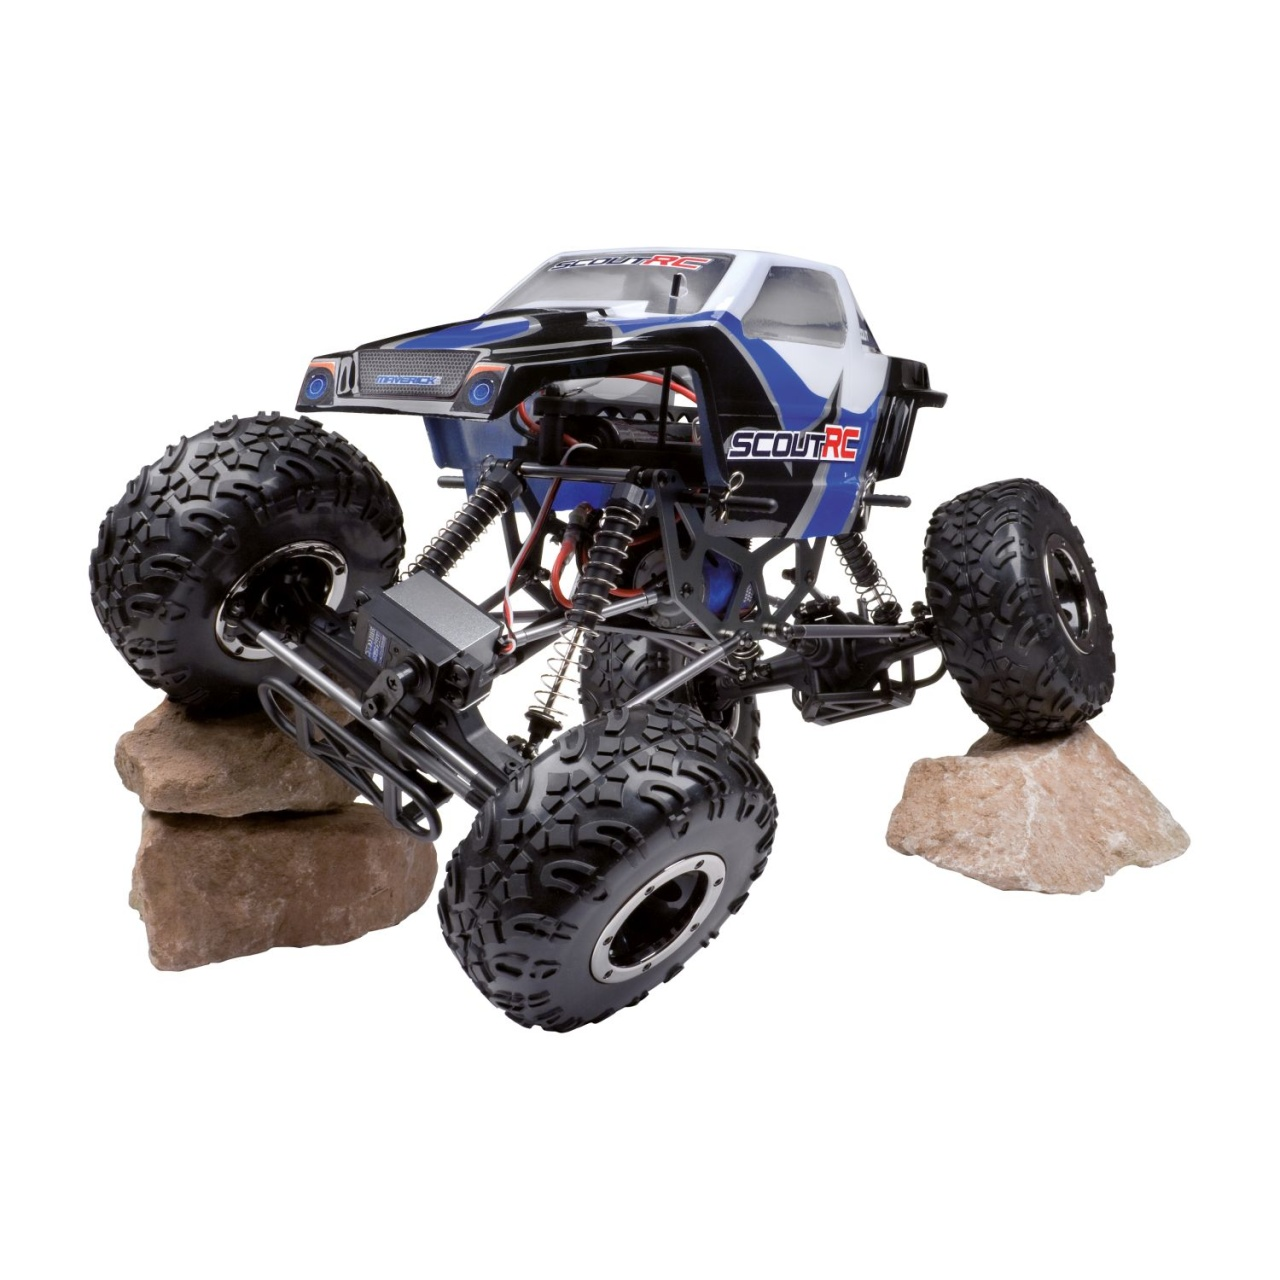 LRP Scout RC RTR 4WD Rock Crawler mit 2.4GHz RC-Anlage